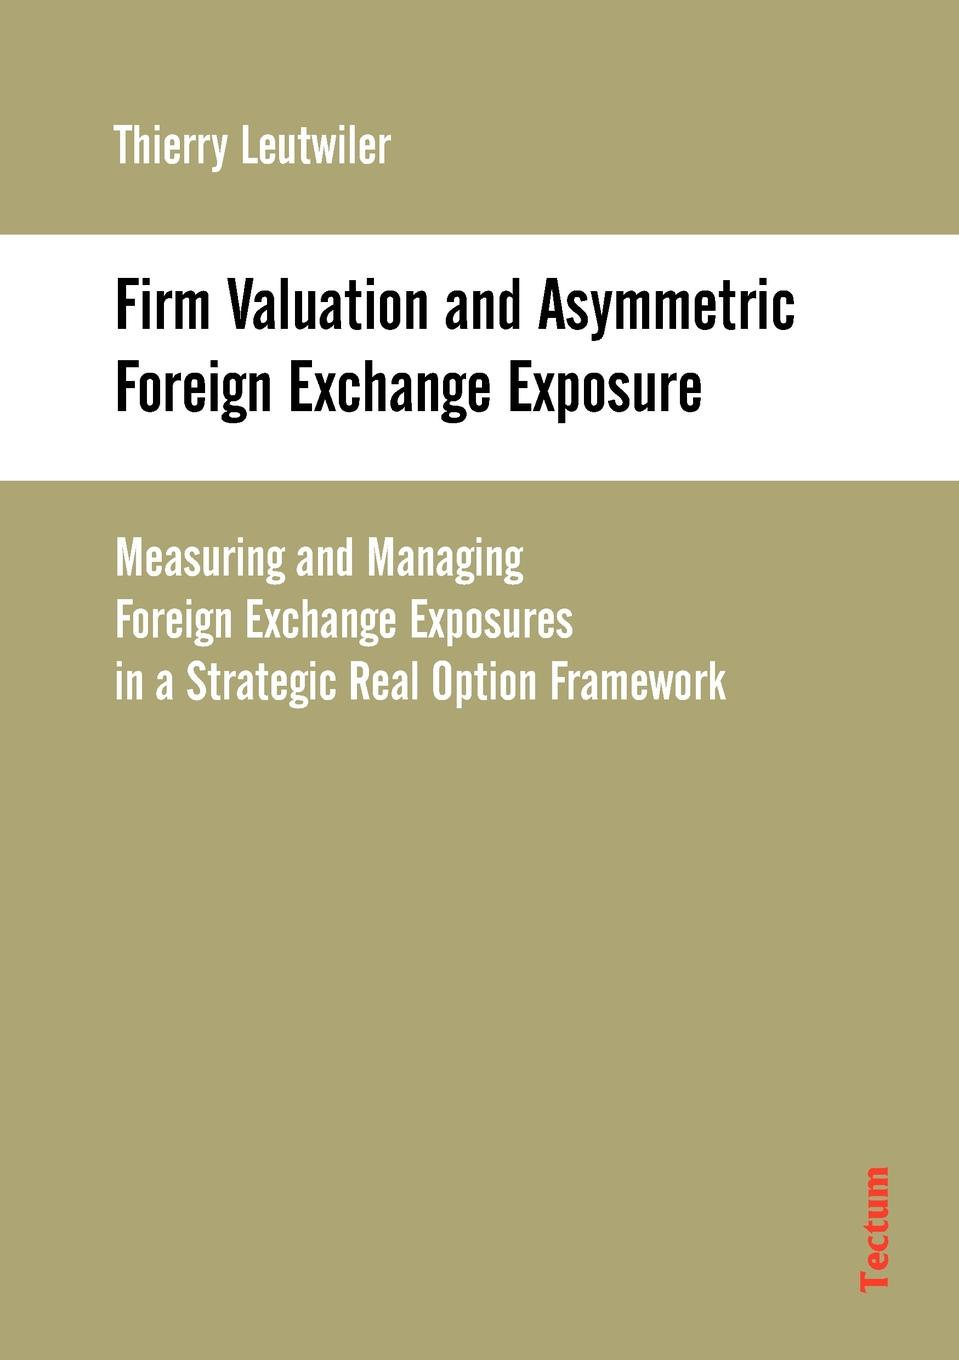 Thierry Leutwiler Firm Valuation and Asymmetric Foreign Exchange Exposure недорго, оригинальная цена